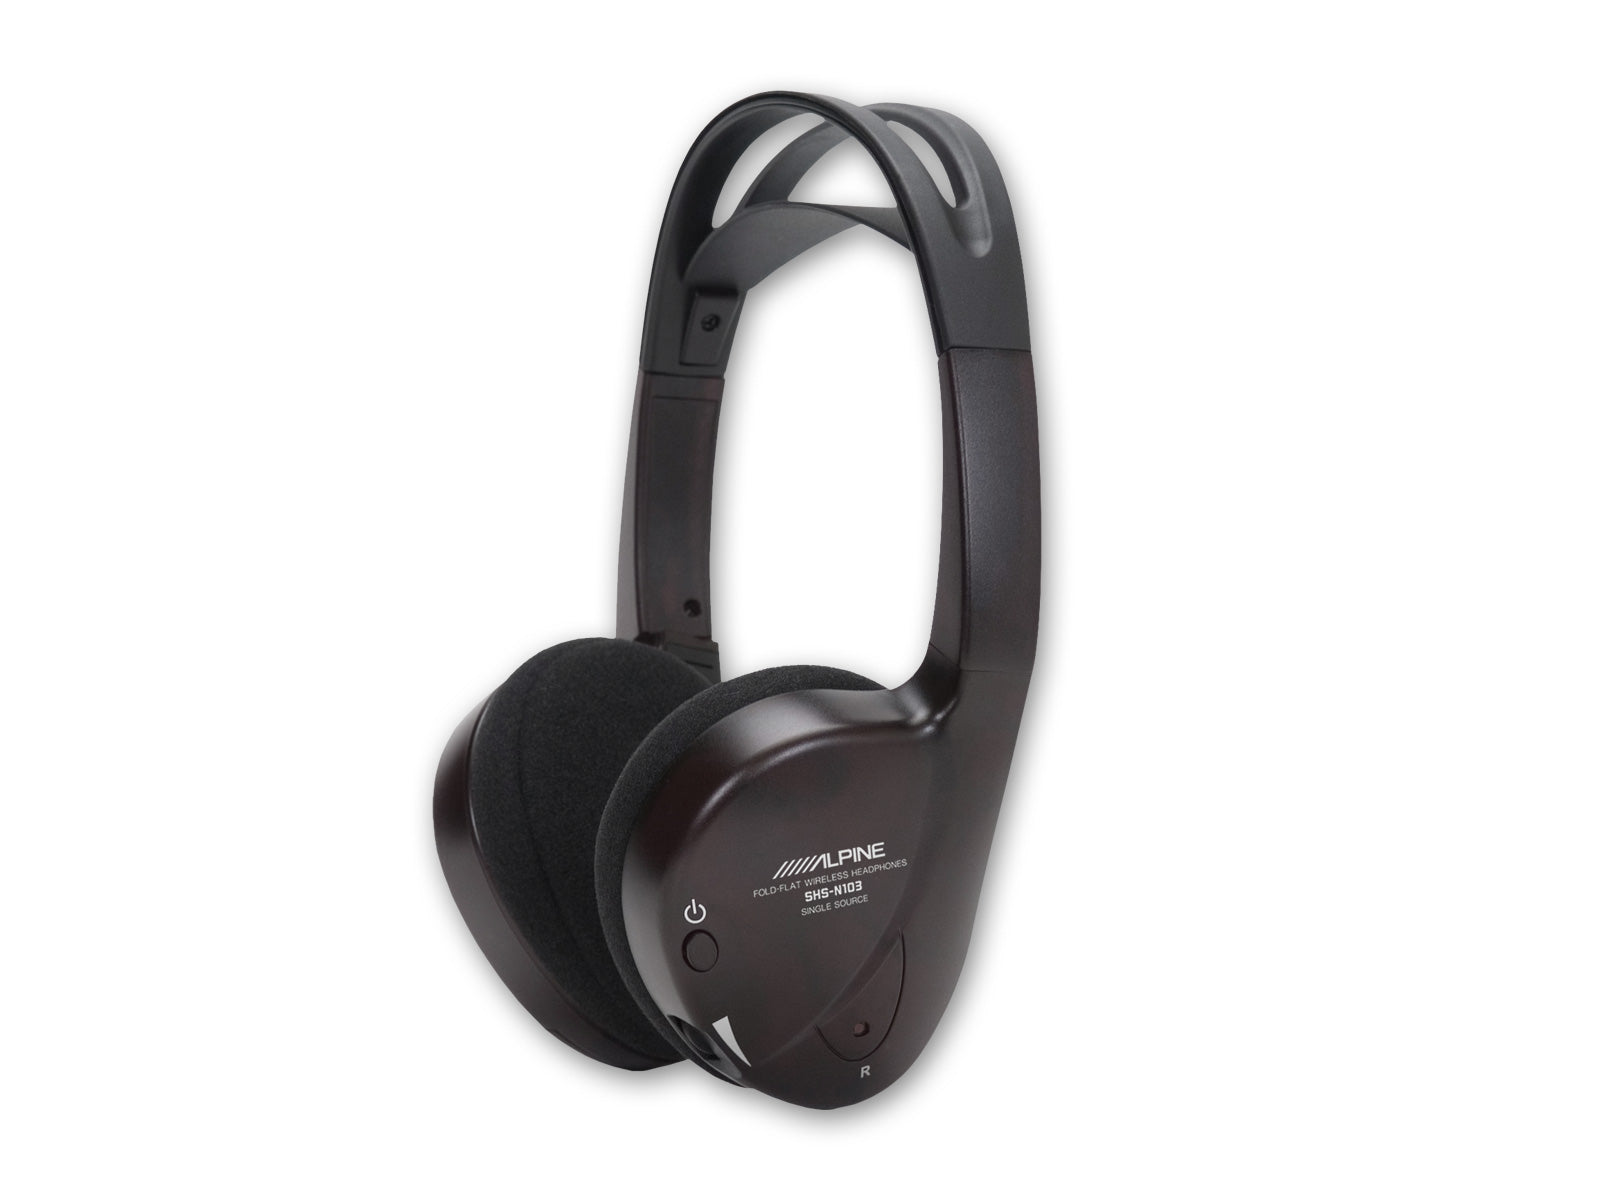 Alpine SHS-N103 wireless headphones